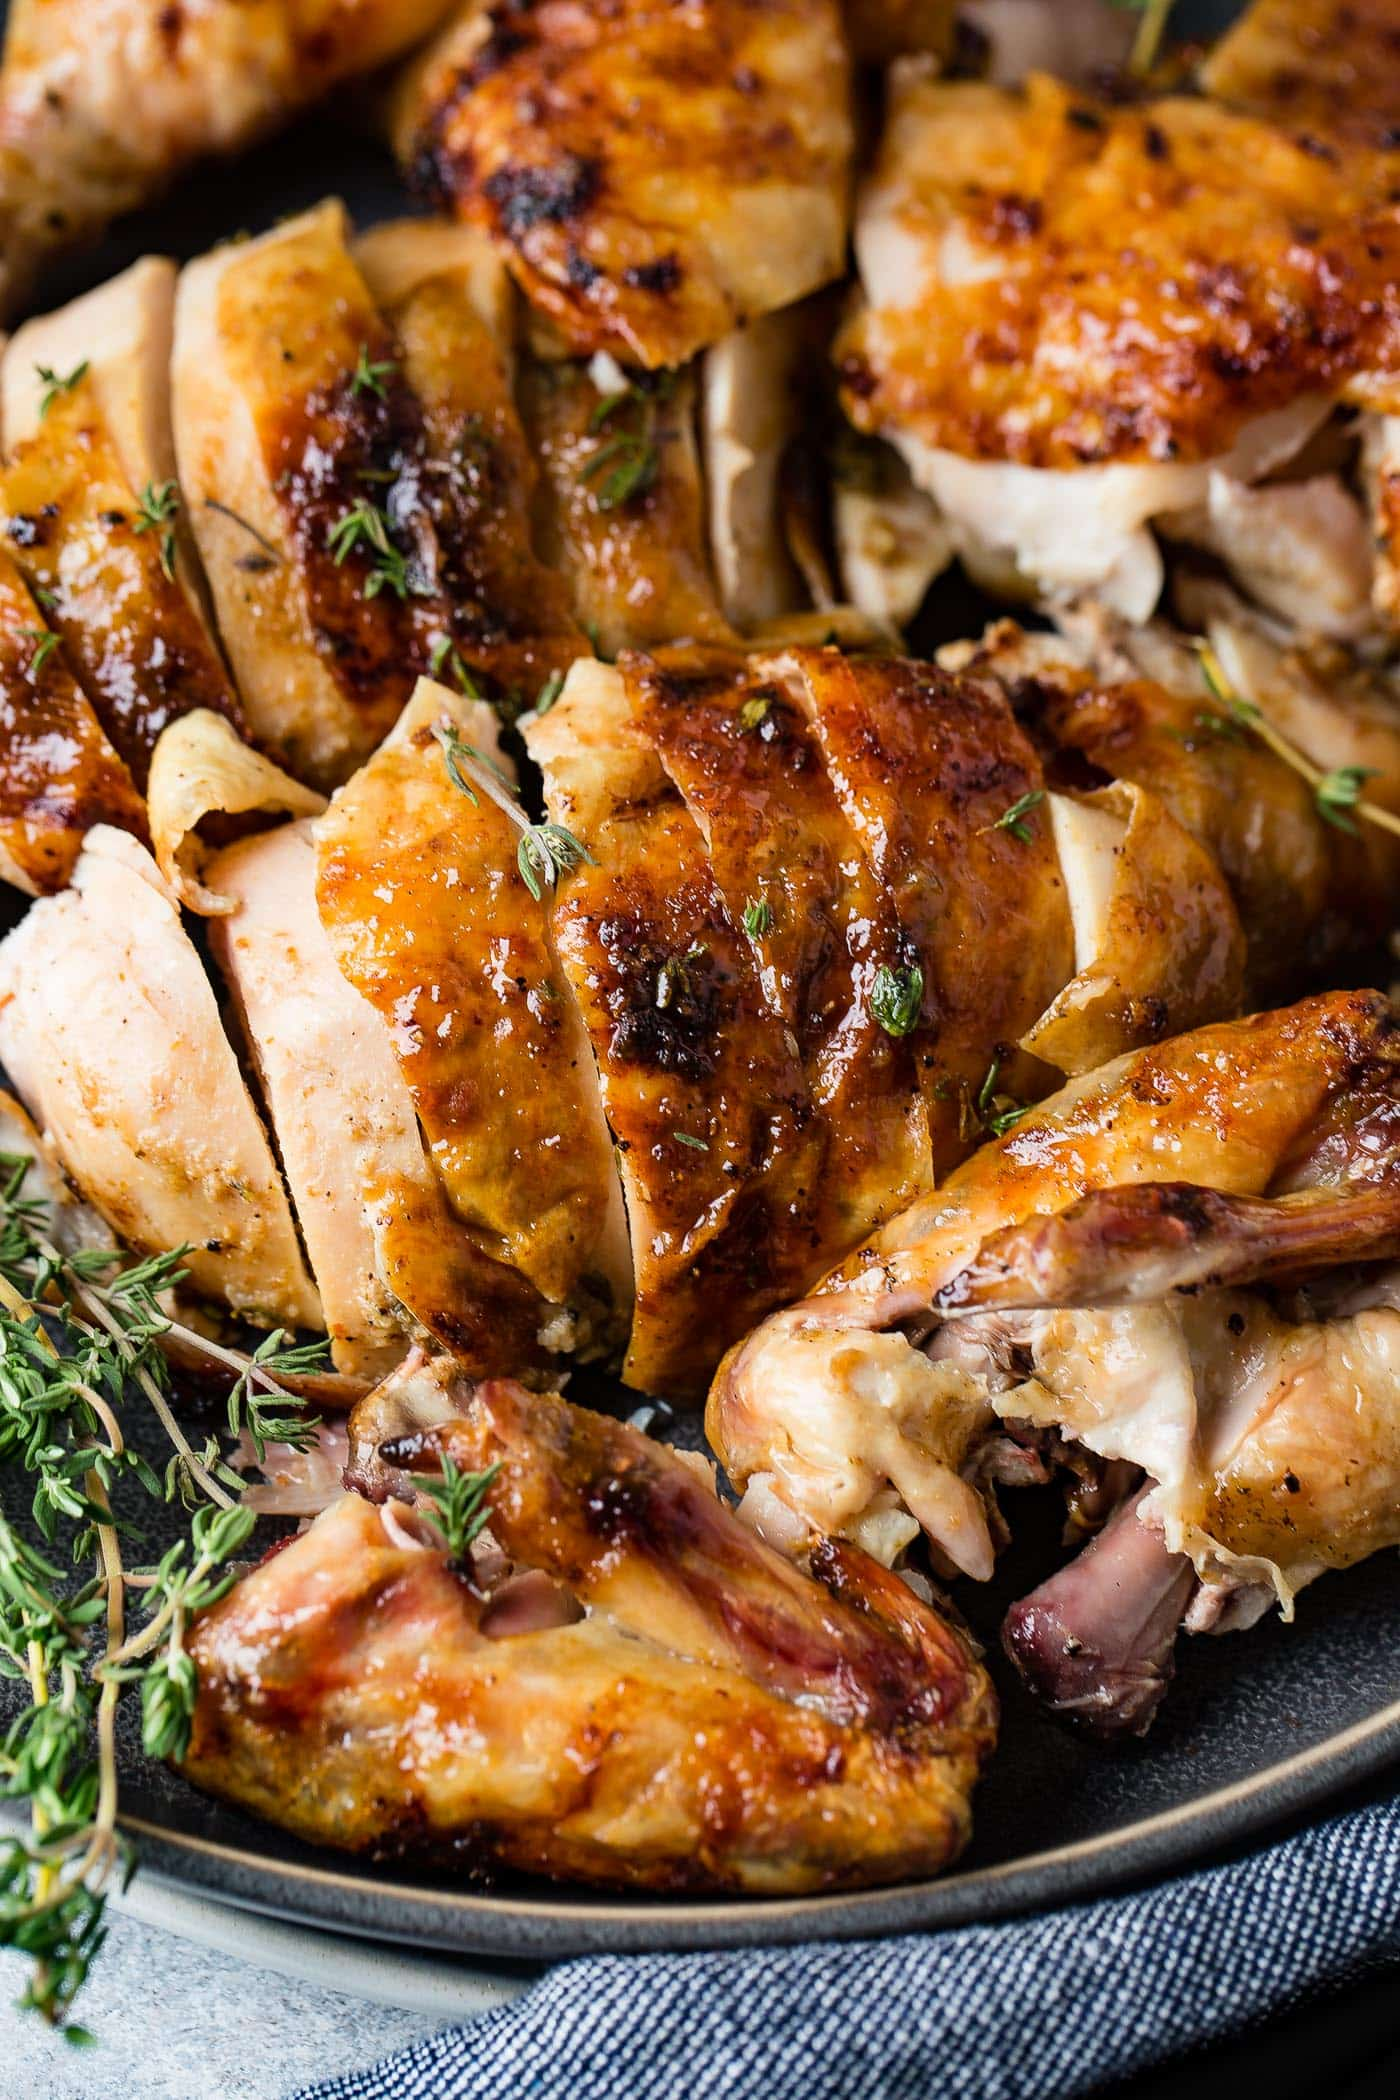 A sliced smoked chicken on a platter. There are fresh thyme leaves sprinkled over the top of the chicken and sprigs of thyme are on the platter.